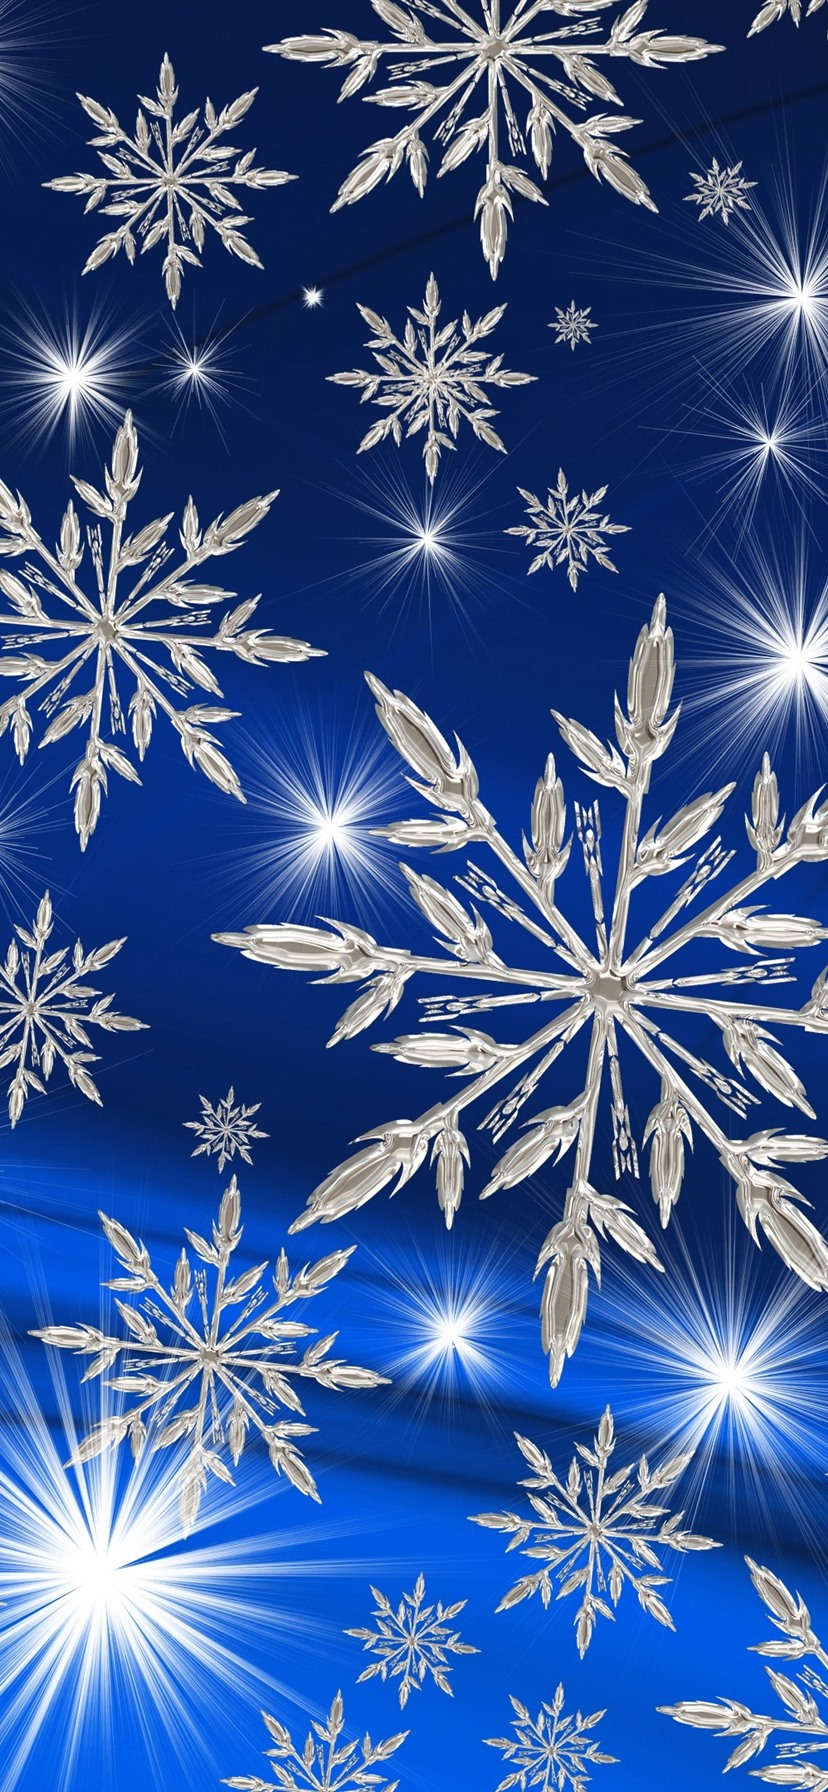 Many White Snowflakes Stars Blue Background 1080x1920 Iphone 8 7 6 6s Plus Wallpaper Background Picture Image